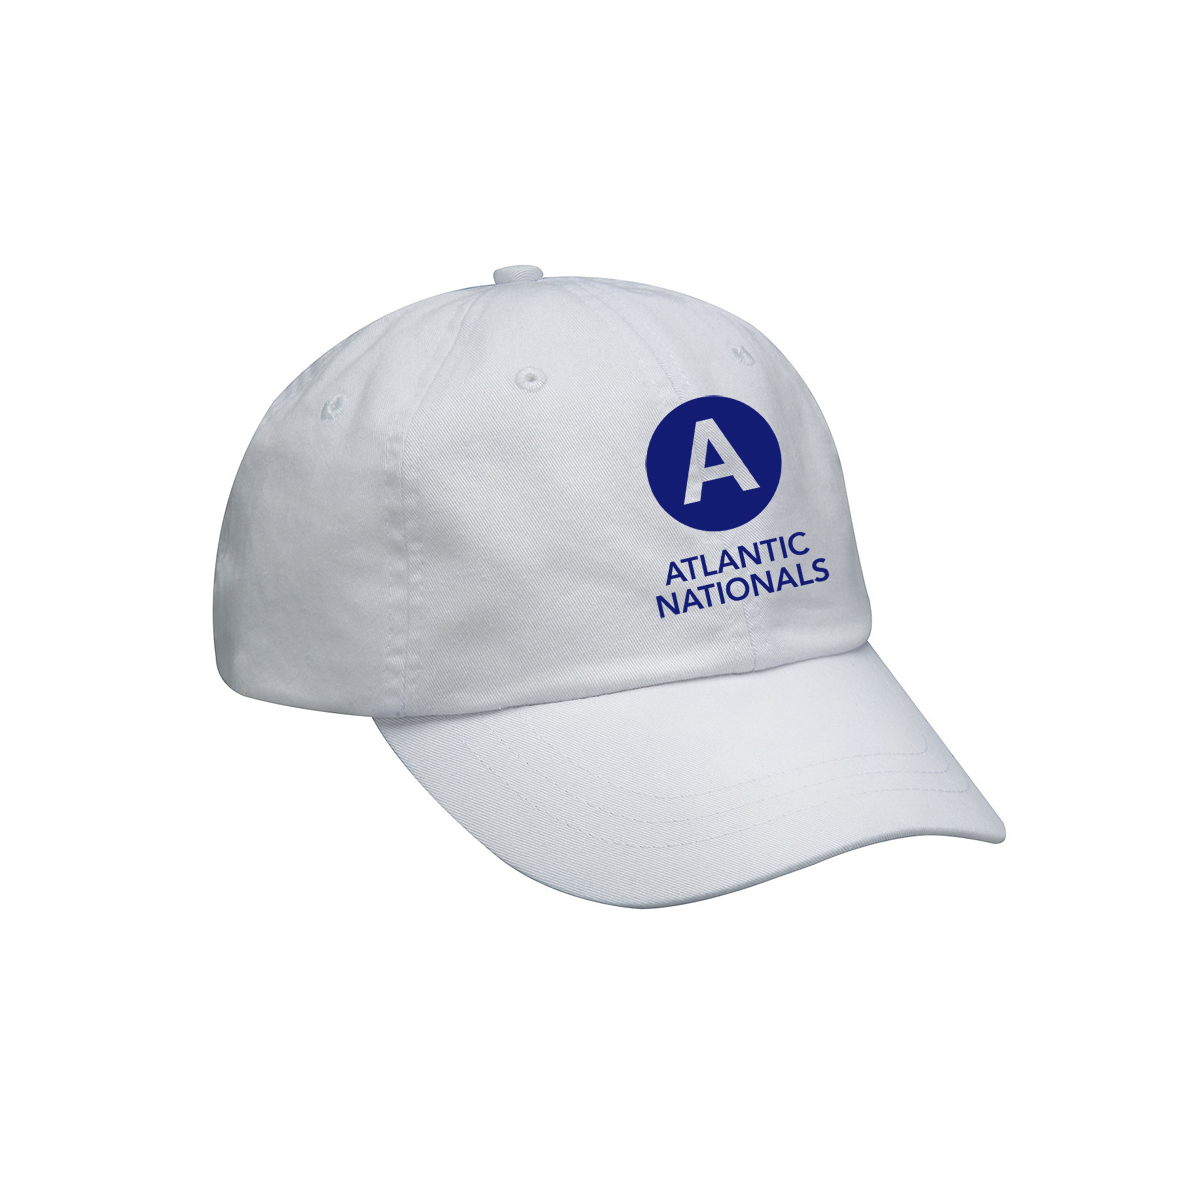 ATLANTIC NATIONALS - ADJUSTABLE HAT